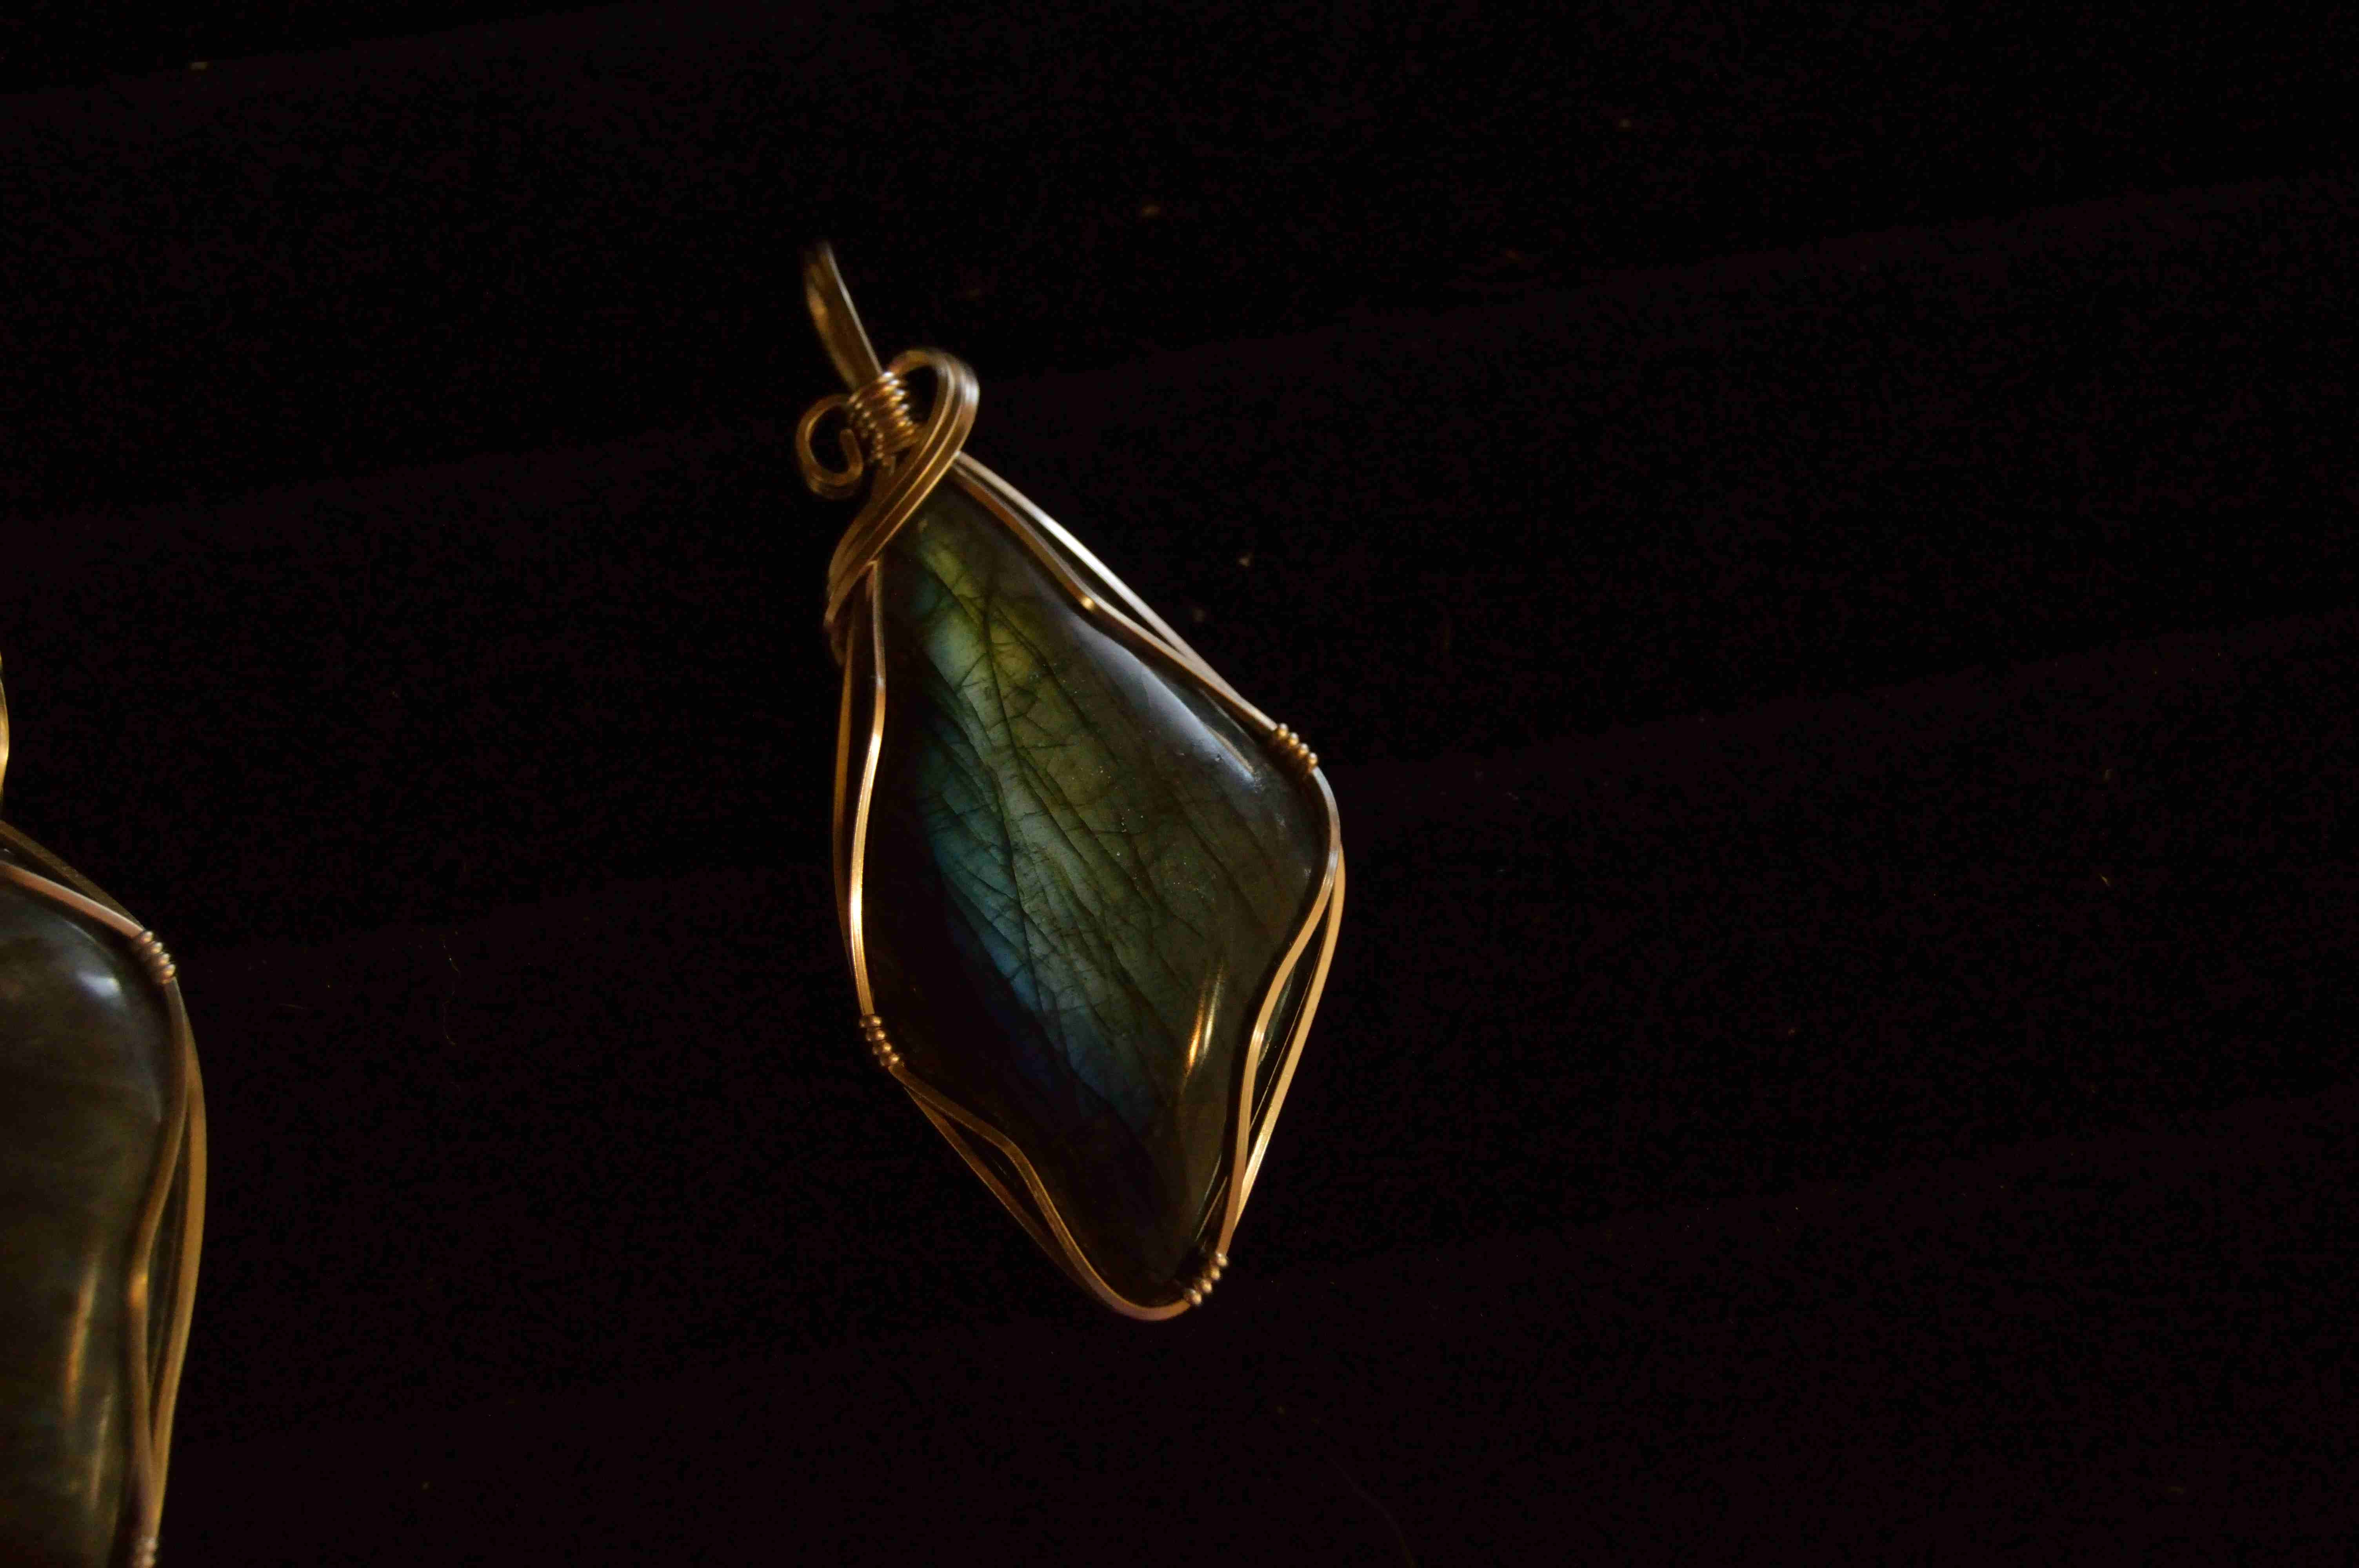 A gemstone pendant wrapped in a copper wire against a black background